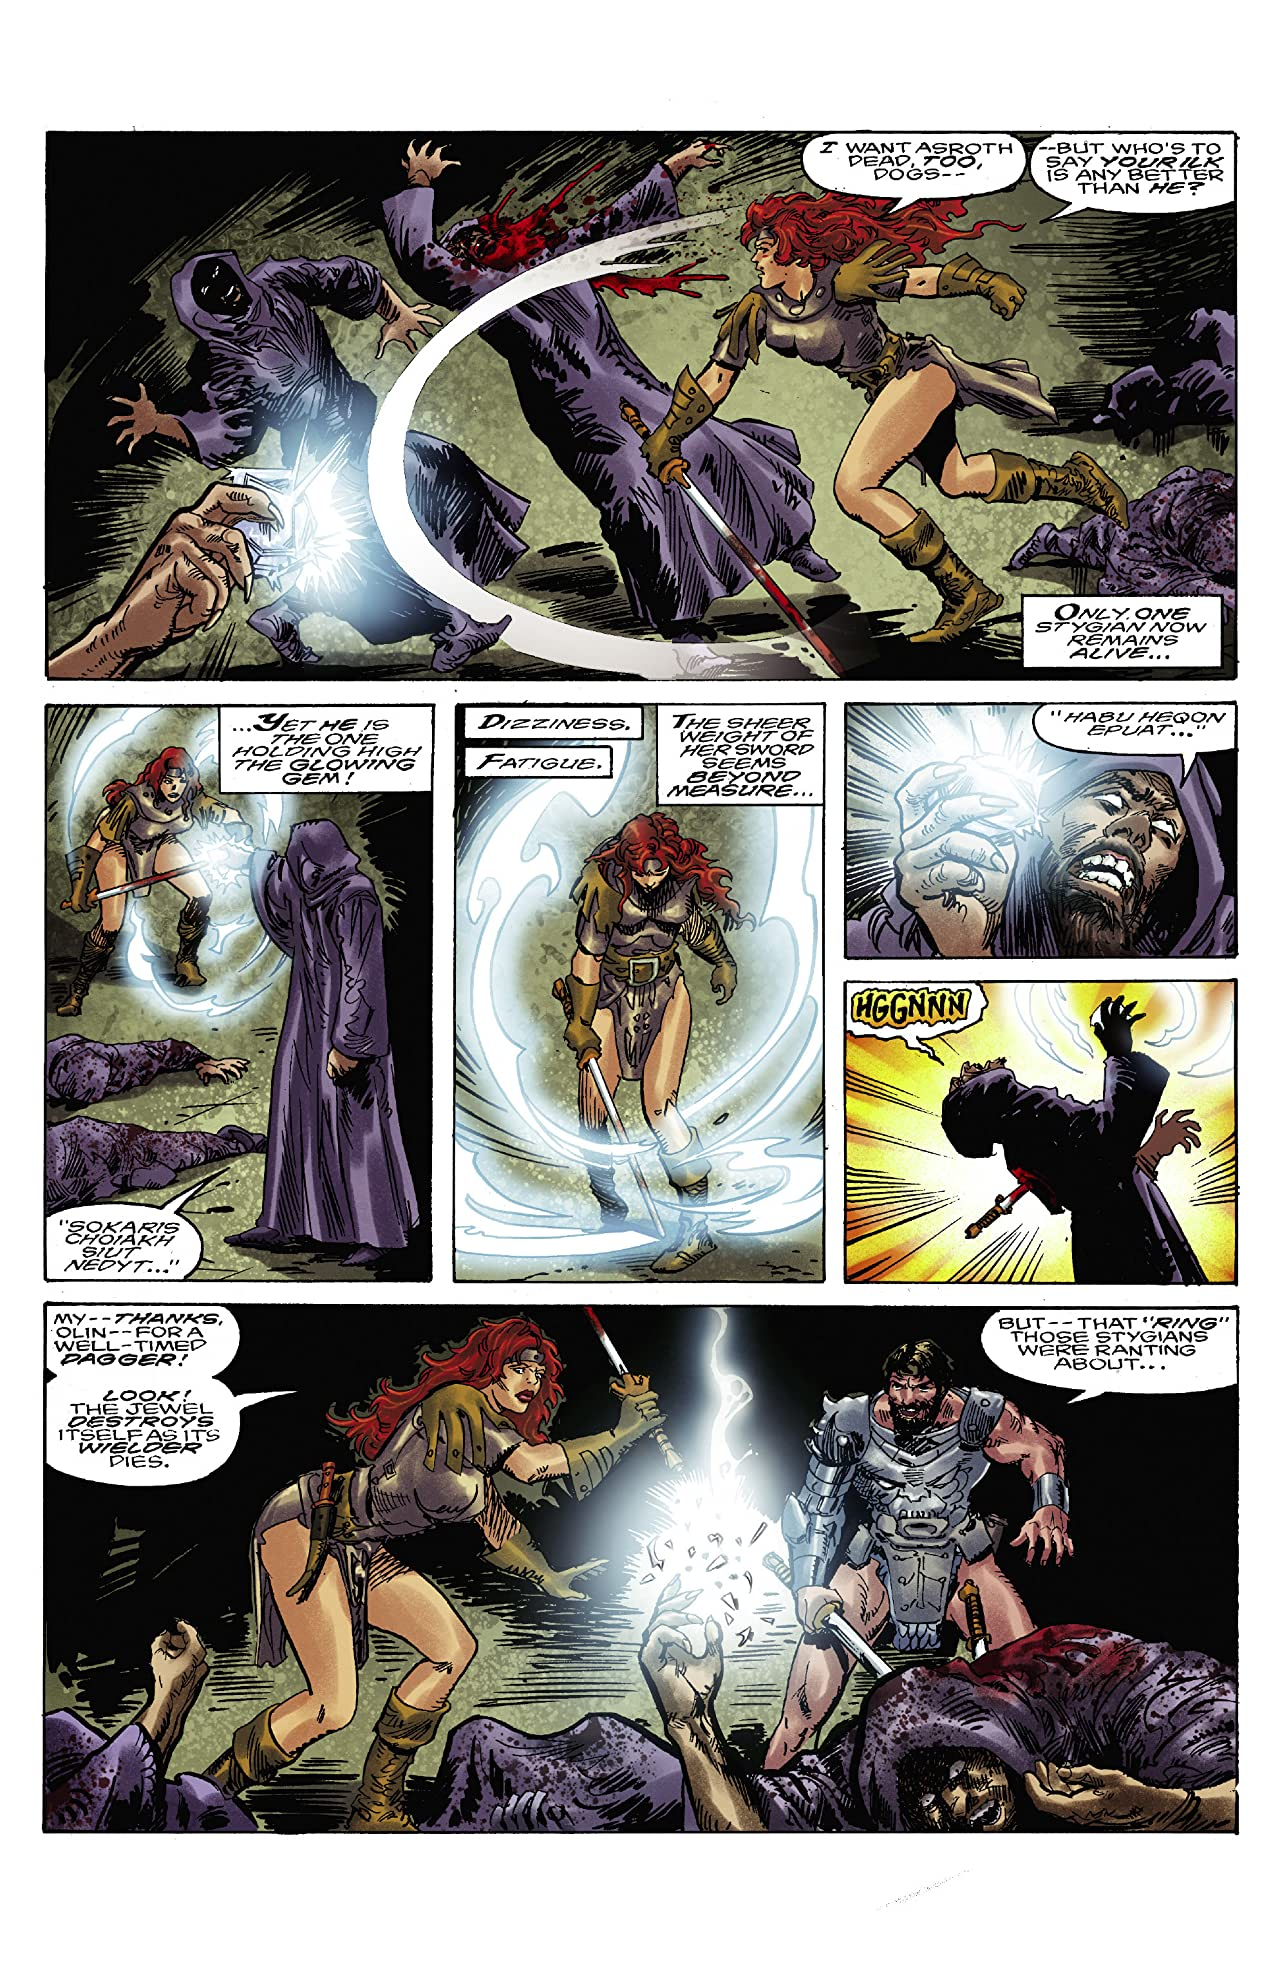 Classic Red Sonja Remastered #3